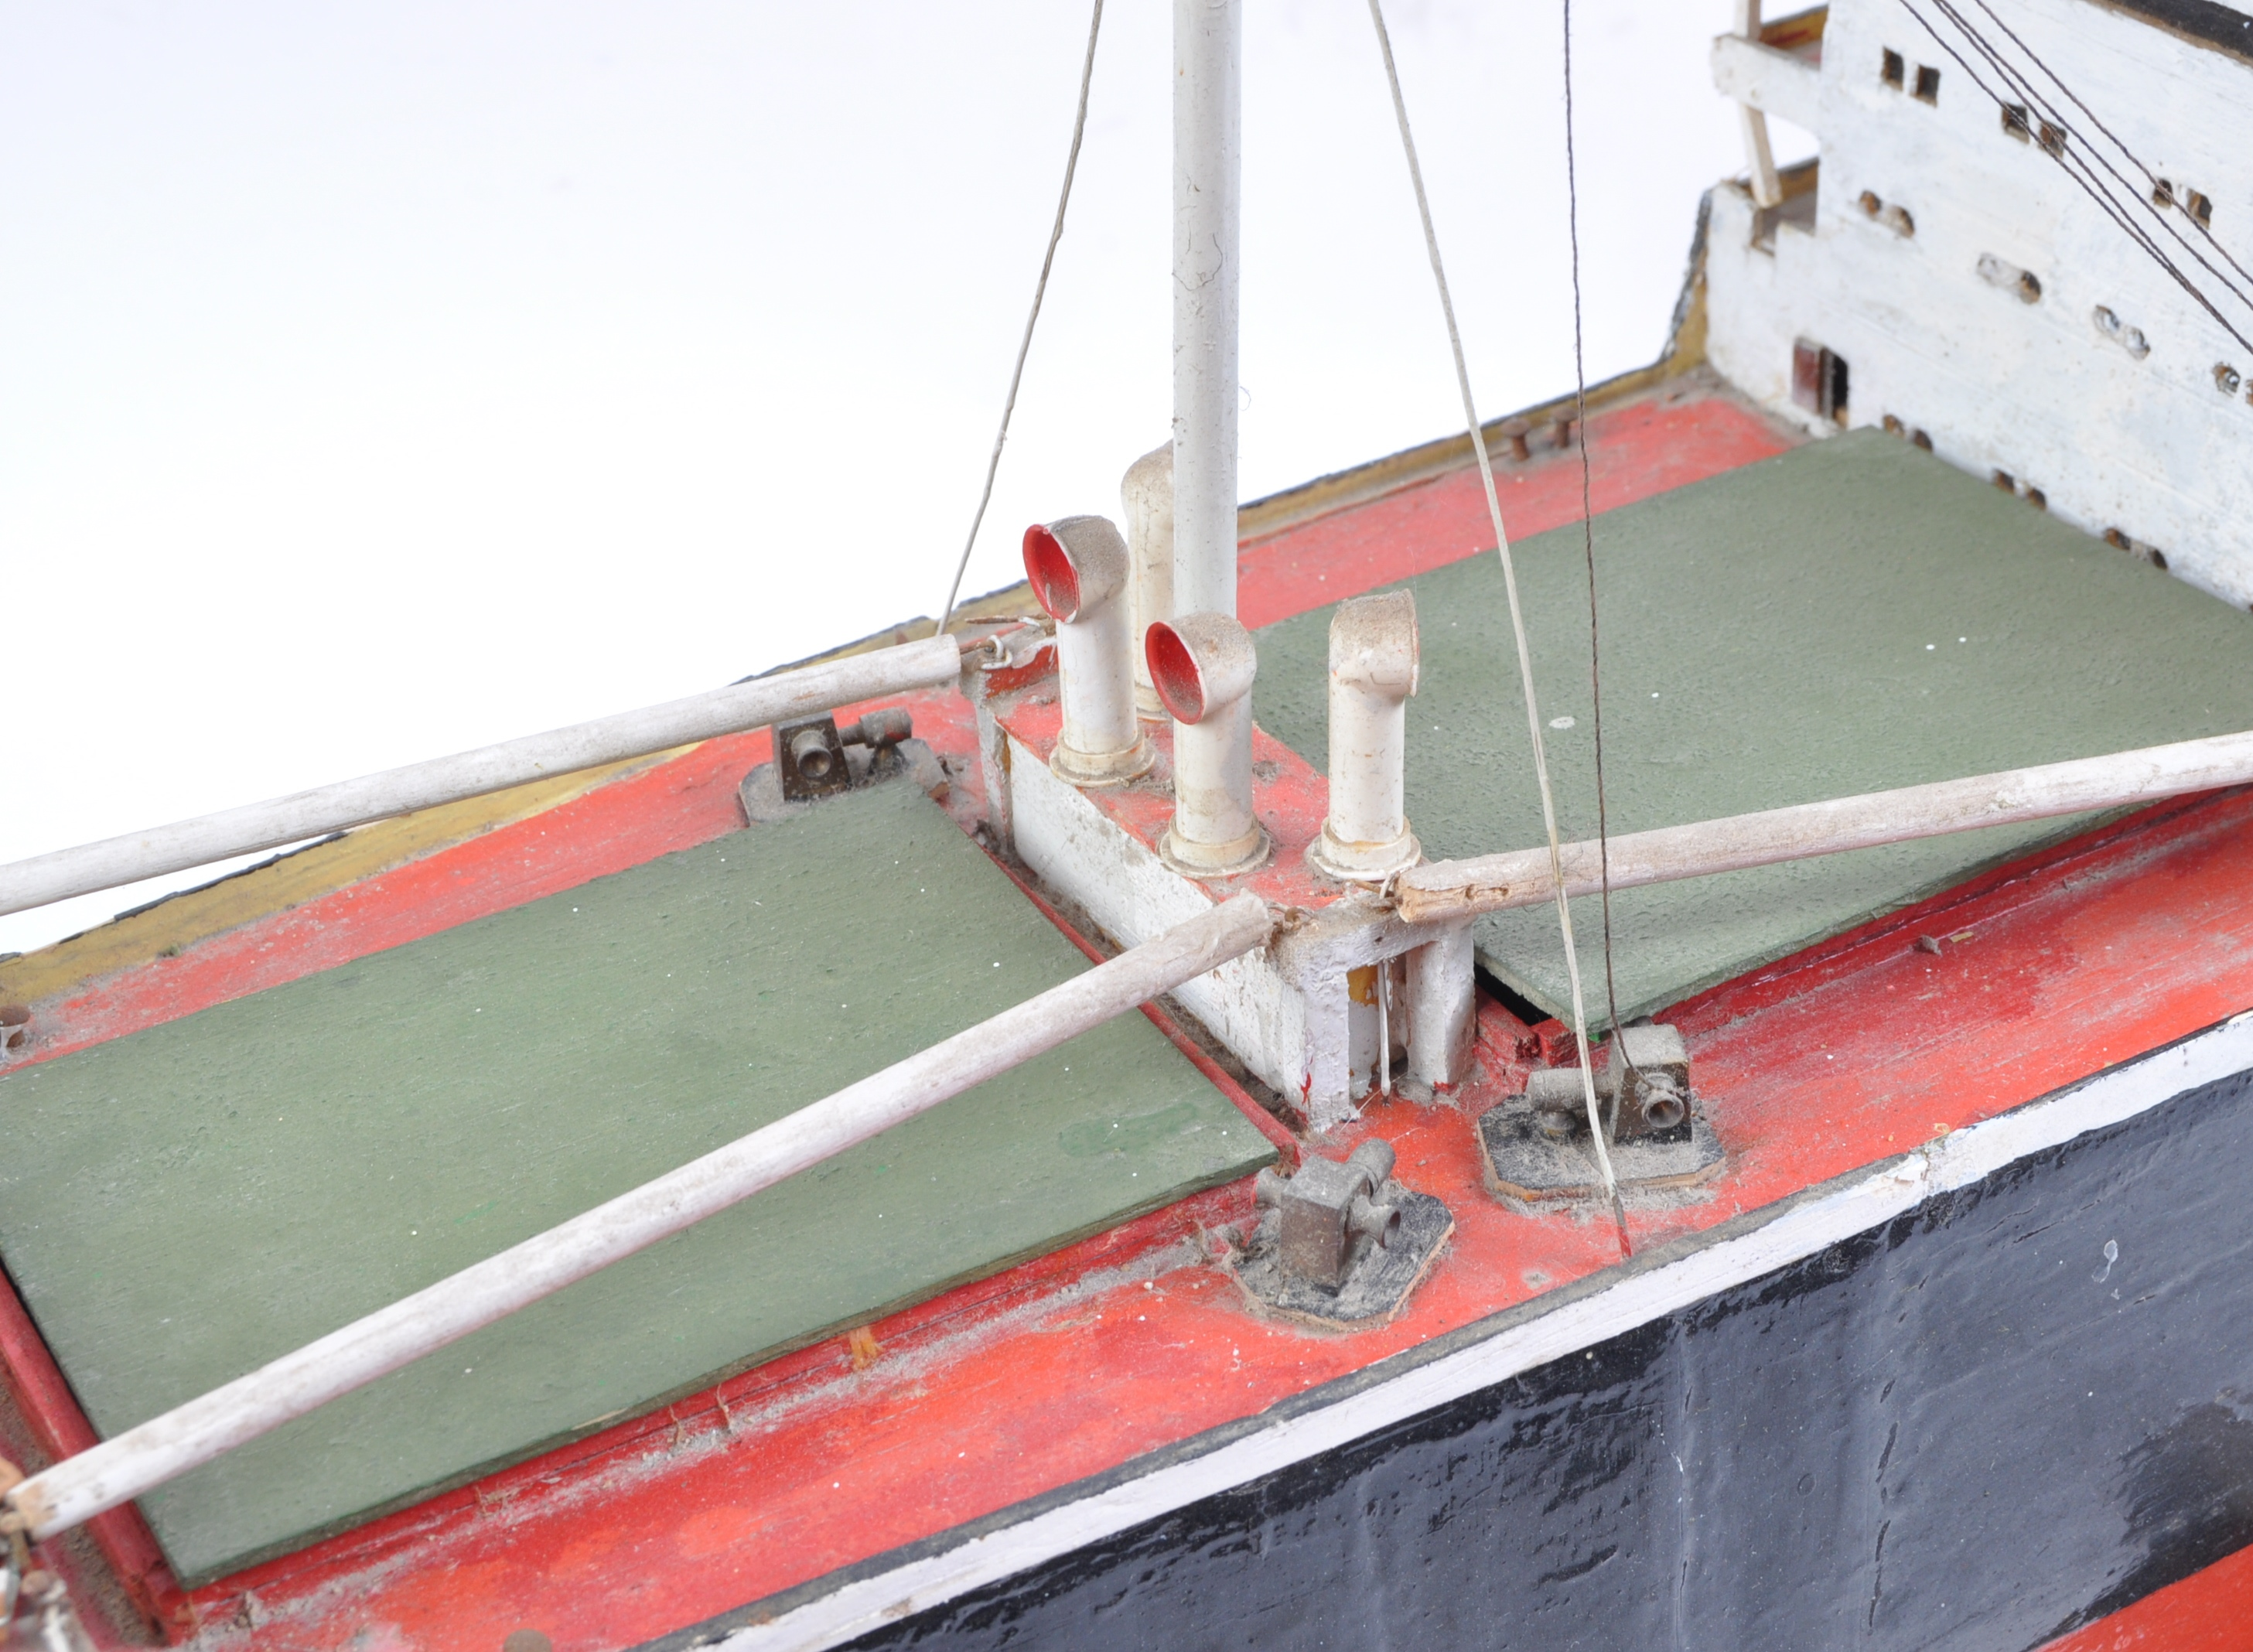 SHIPPING - RADIO CONTROLLED SCALE MODEL ' FORT INDUS ' CARGO SHIP - Image 3 of 11